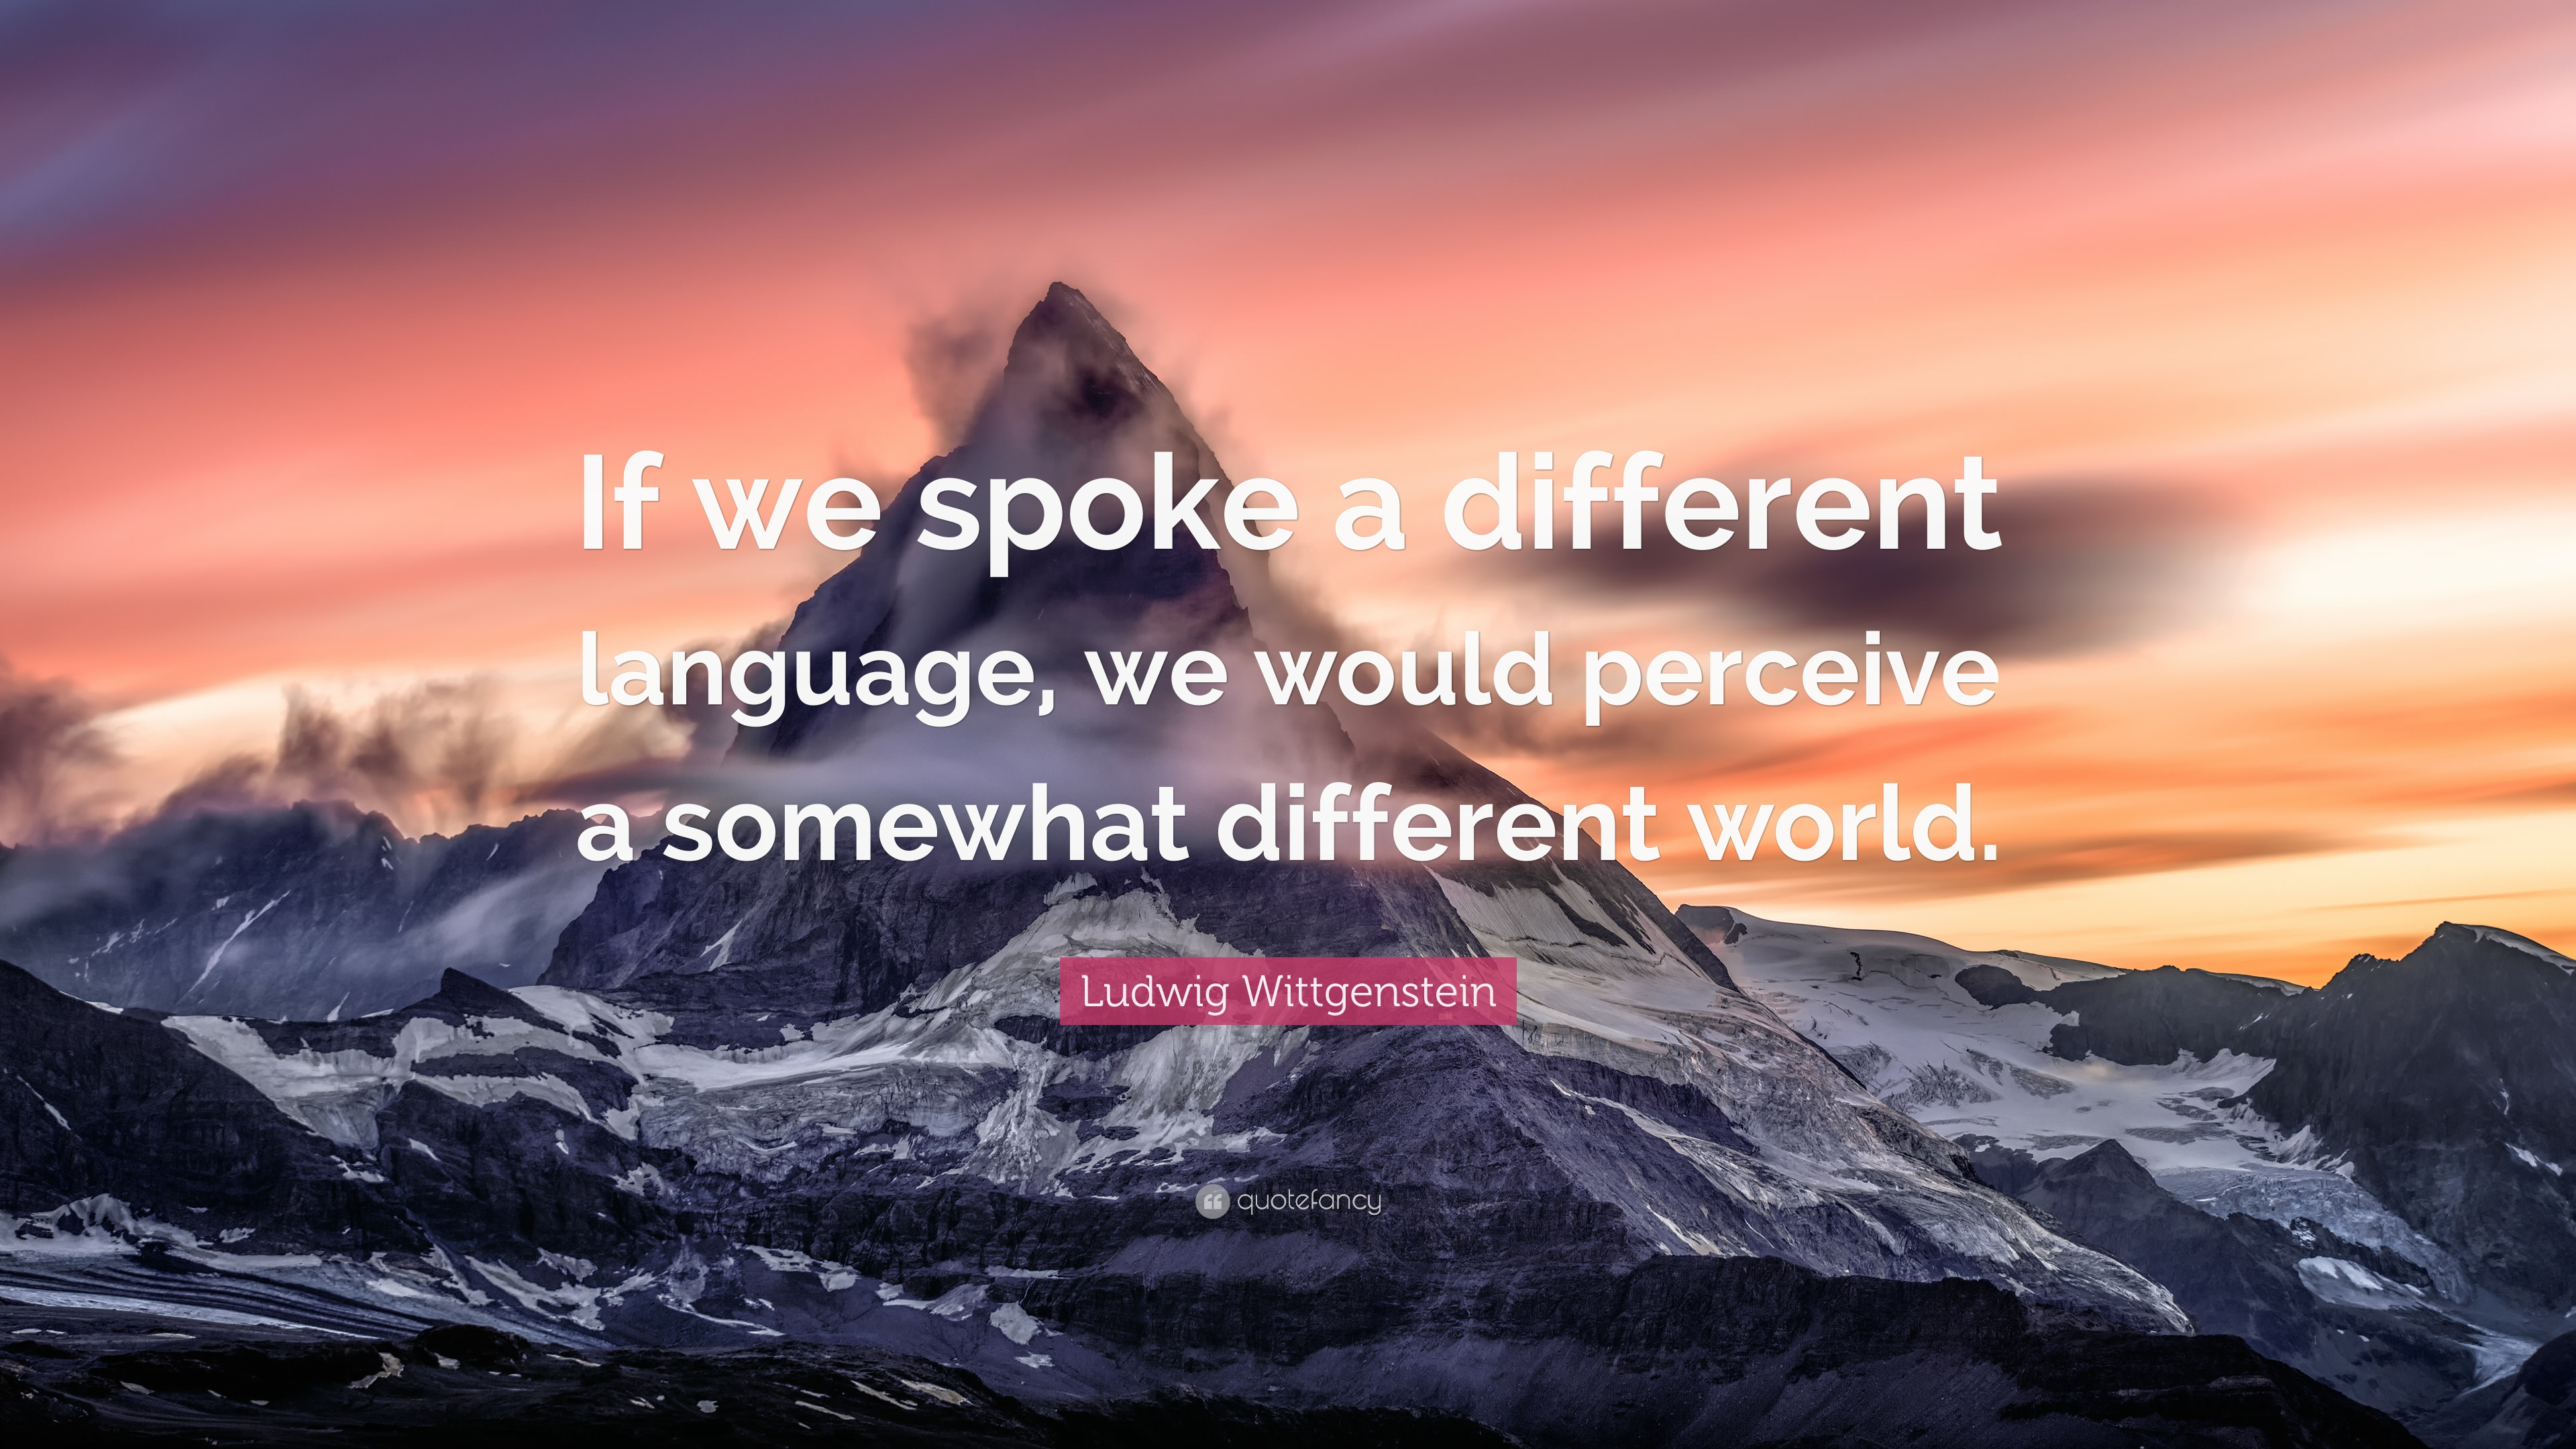 """Ludwig Wittgenstein Quote: """"If we spoke a different language, we would  perceive a somewhat different world."""" (12 wallpapers) - Quotefancy"""